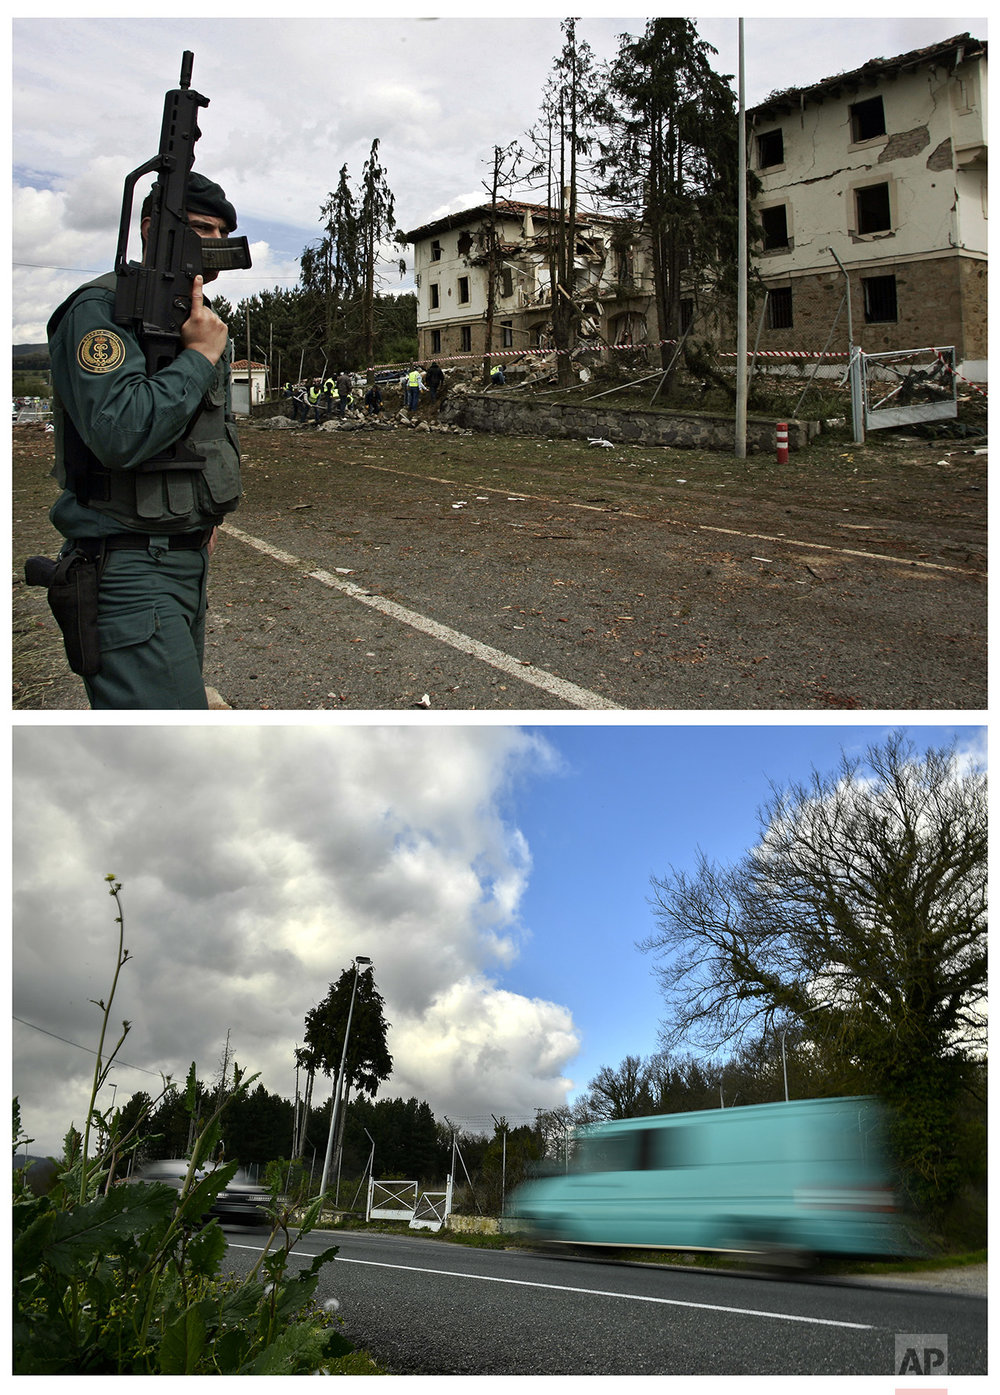 In this two photo combo, a police officer stands at the scene of a car bomb by the Basque armed separatist group ETA that exploded outside a police station in the small Basque town of Legutiano, northern Spain, killing one officer and injuring four on May 14, 2008, top, and vehicles driving past the same place on April 4, 2017. (AP Photo/Alvaro Barrientos)